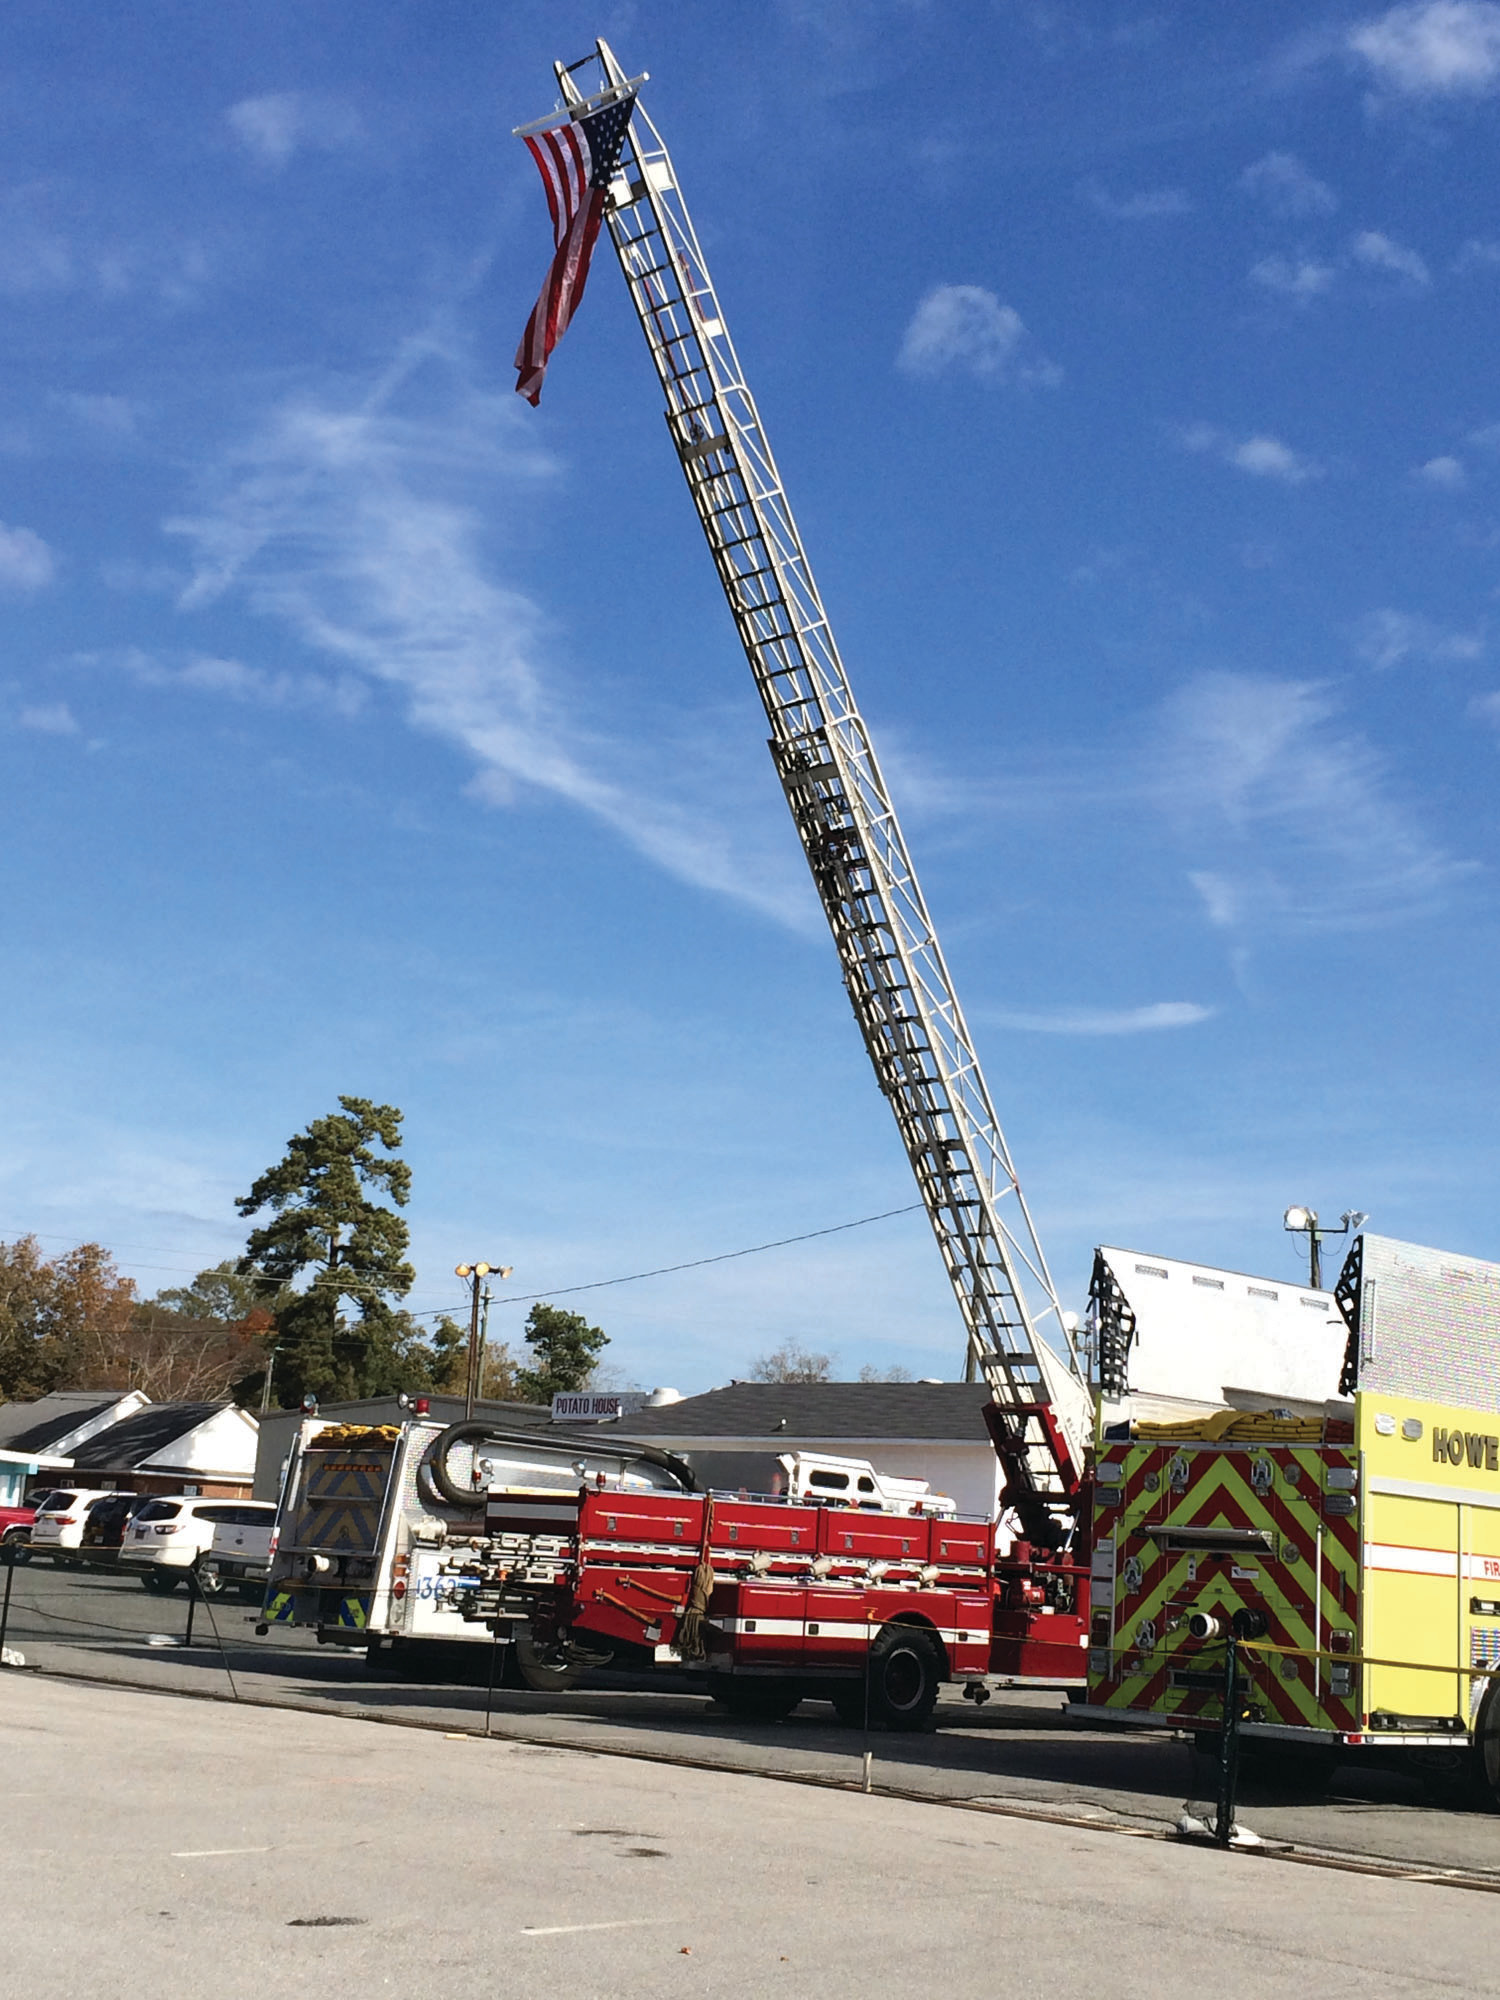 South Lynches Fire Department flew its large U.S. flag over the Sumter fairgrounds during the Eighth-Annual Capt. Tom Garrity Firefighters' BBQ Challenge on Saturday.